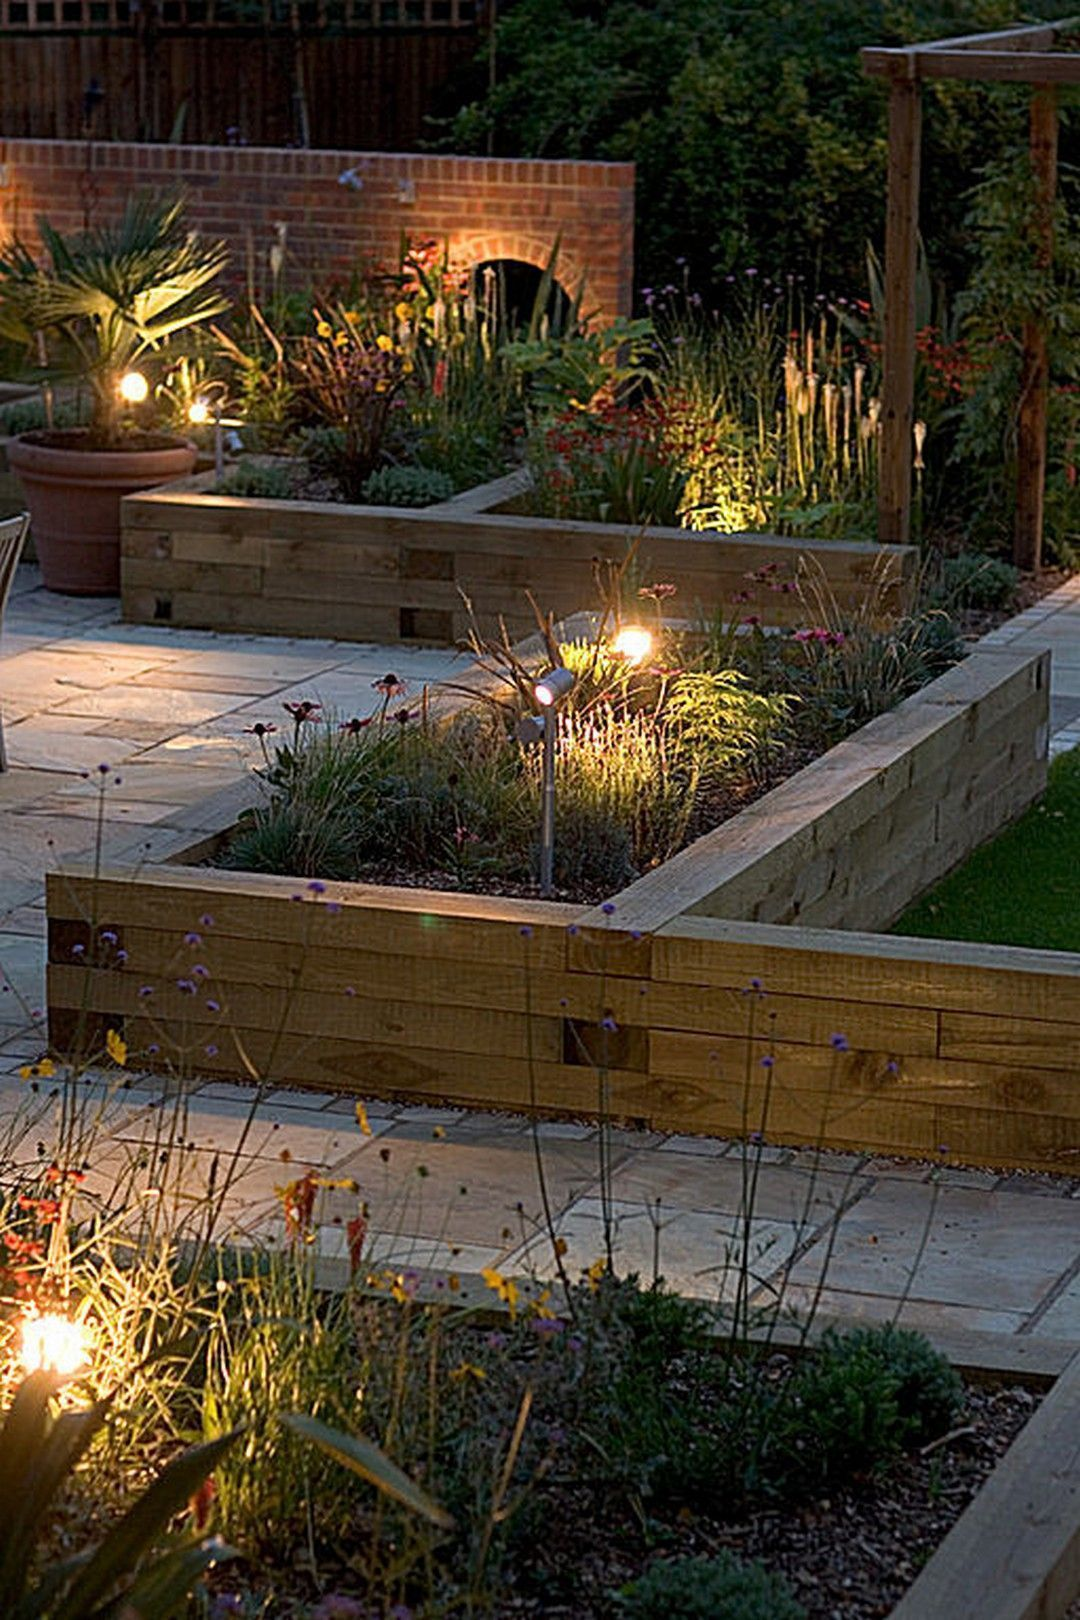 18 Perfect Raised Garden Beds Layout Design https://www ...